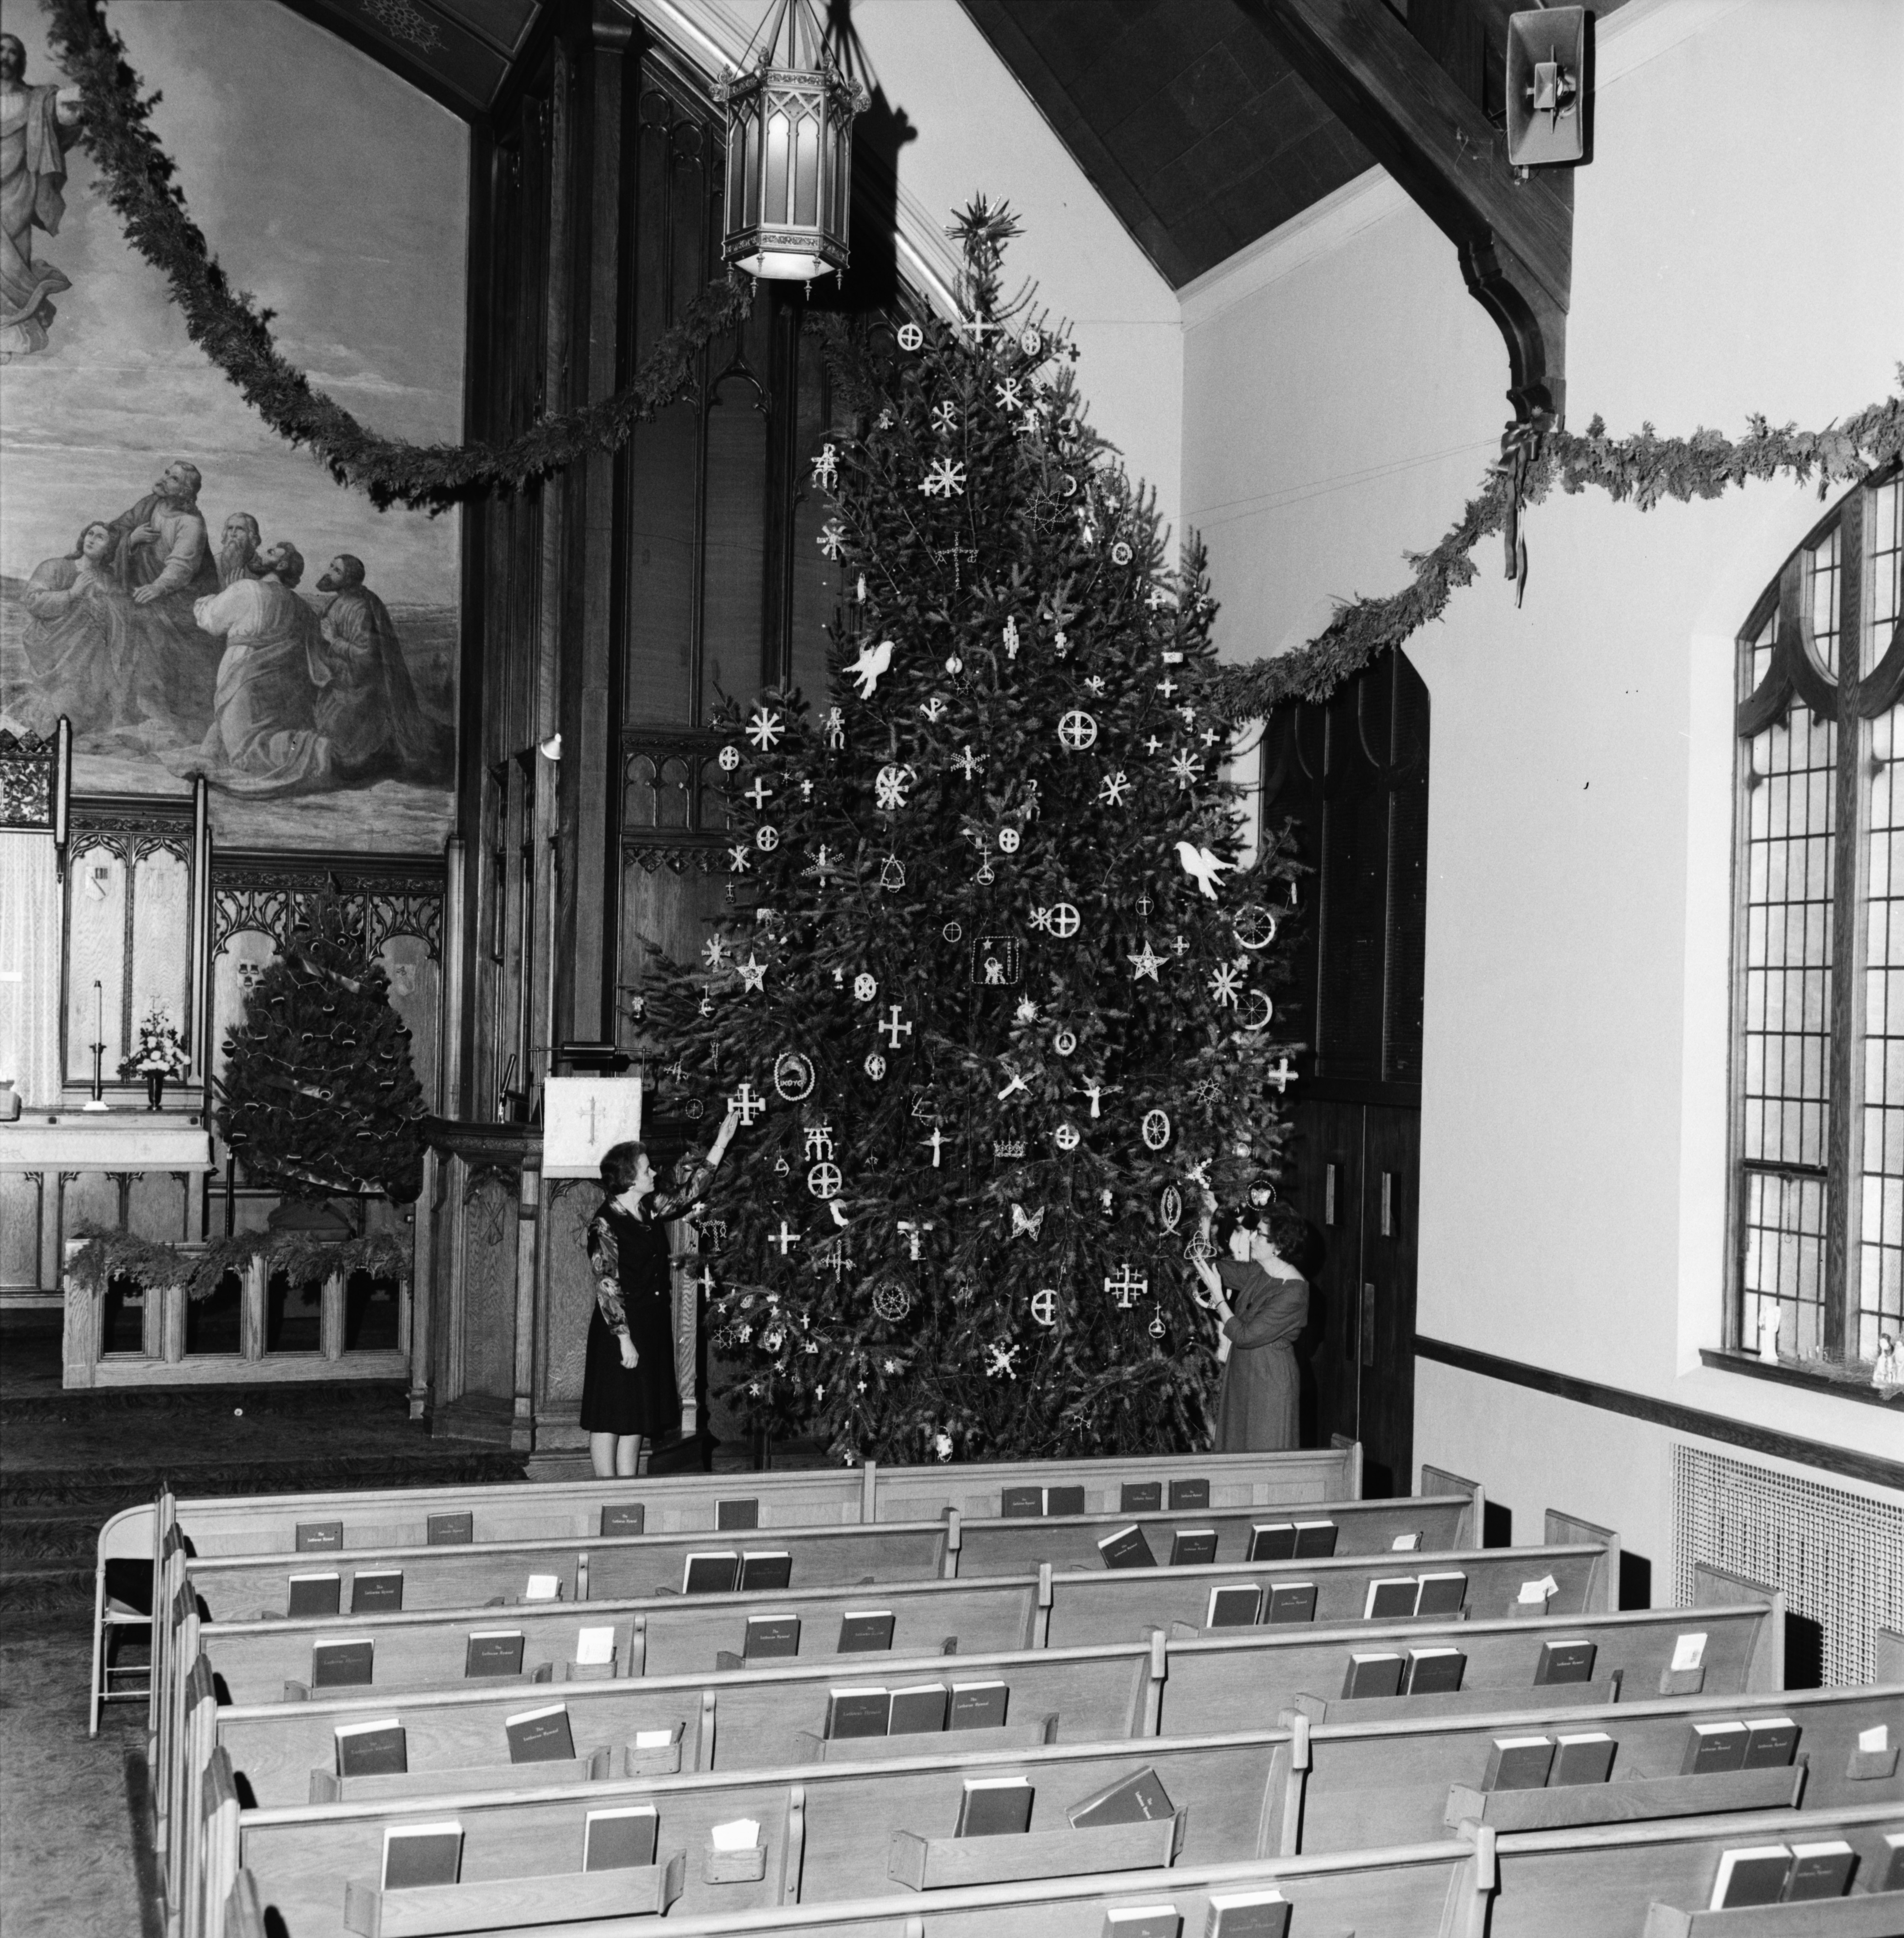 Christmas Tree At St Pauls Lutheran Church Decorated With Symbols